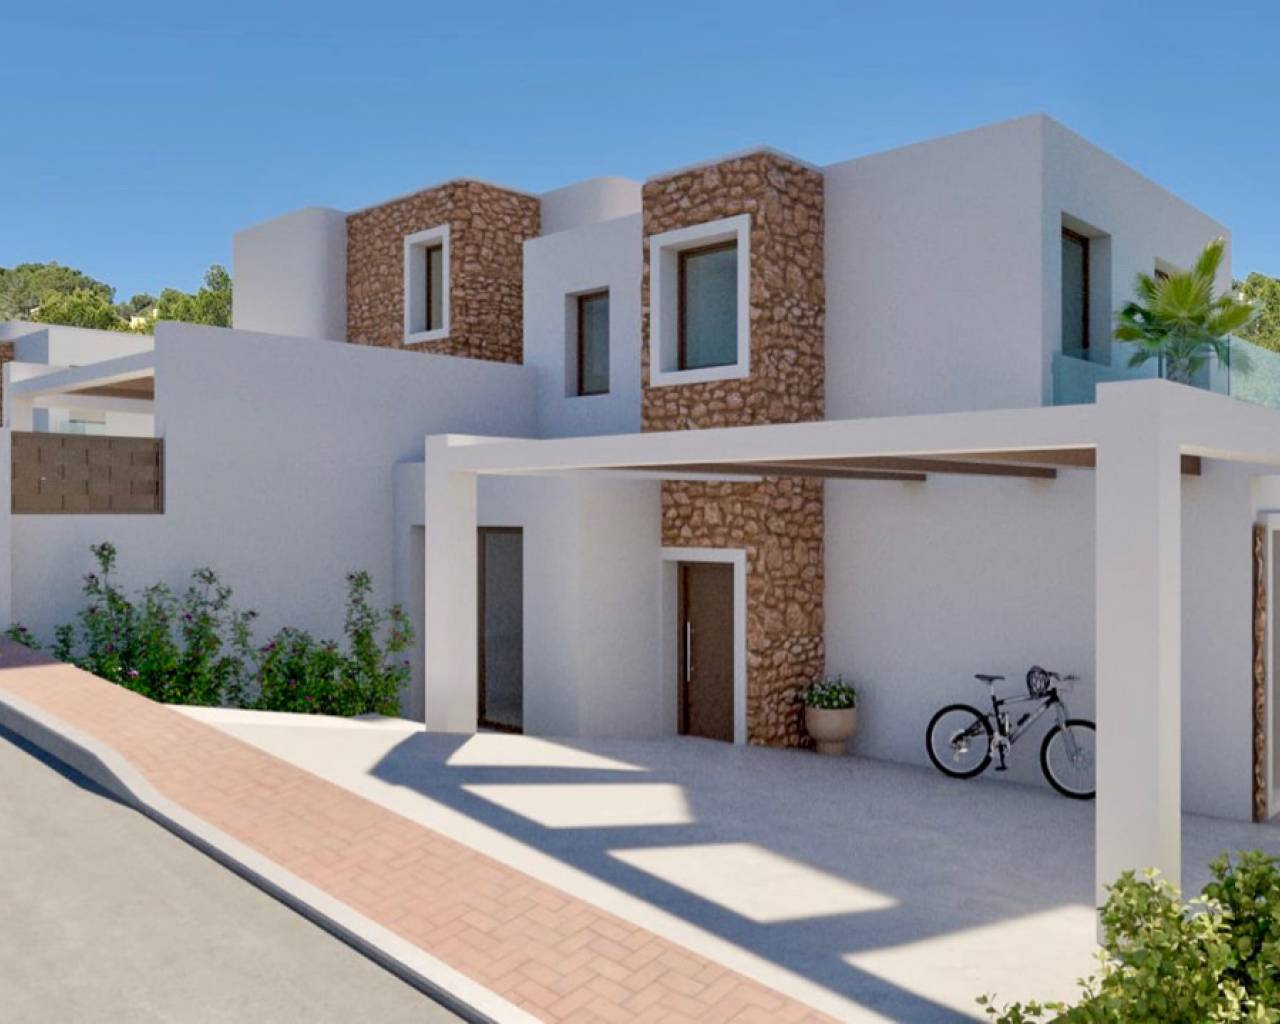 New Build - Townhouse / Terraced House - Moraira - Paichi